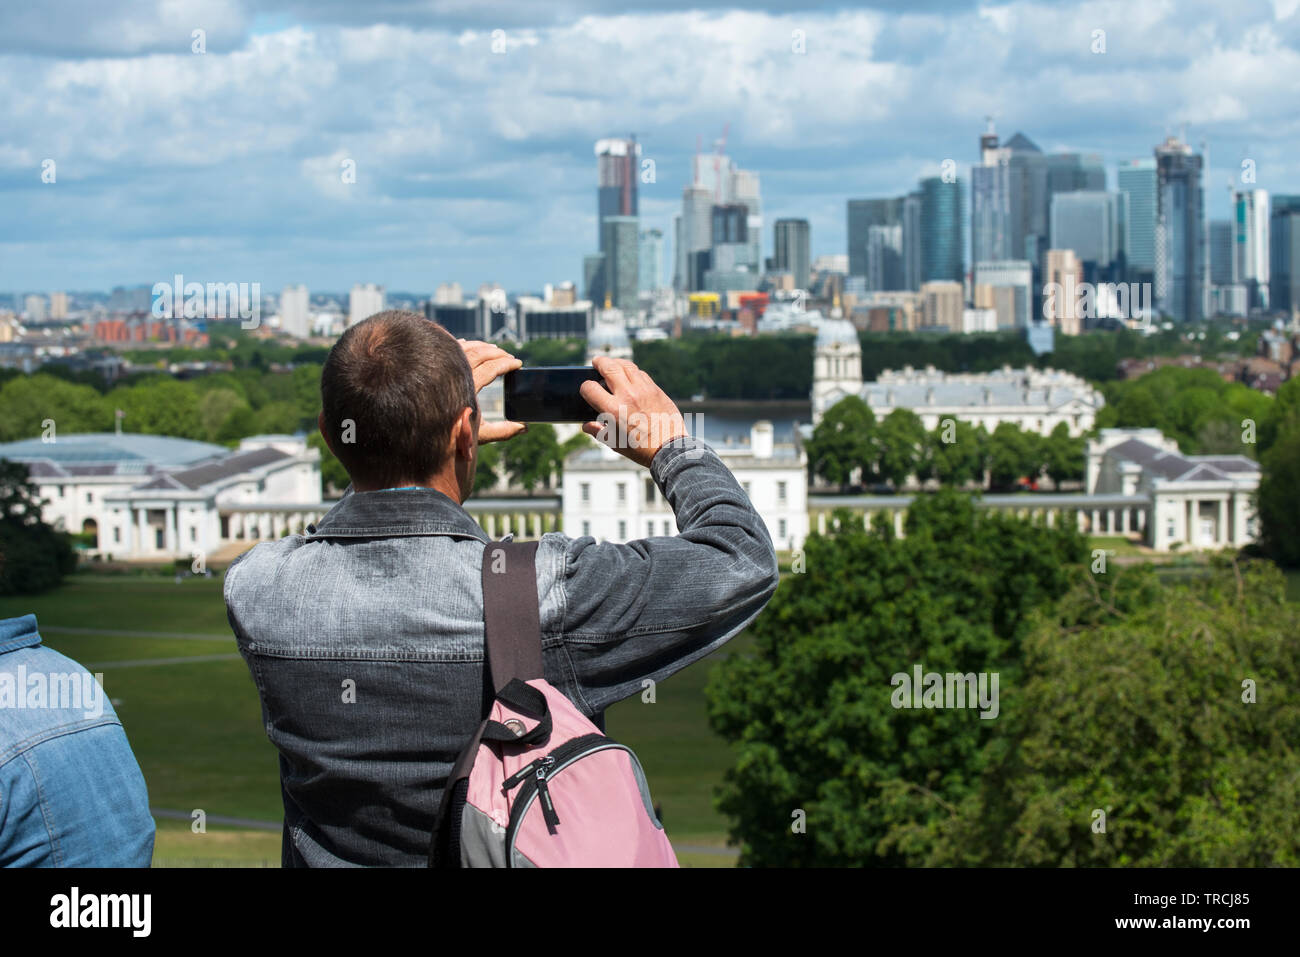 London England UK. Canary Wharf and Queen's House Greenwich photographed from Greenwich Park in South East London. May 2019 Stock Photo